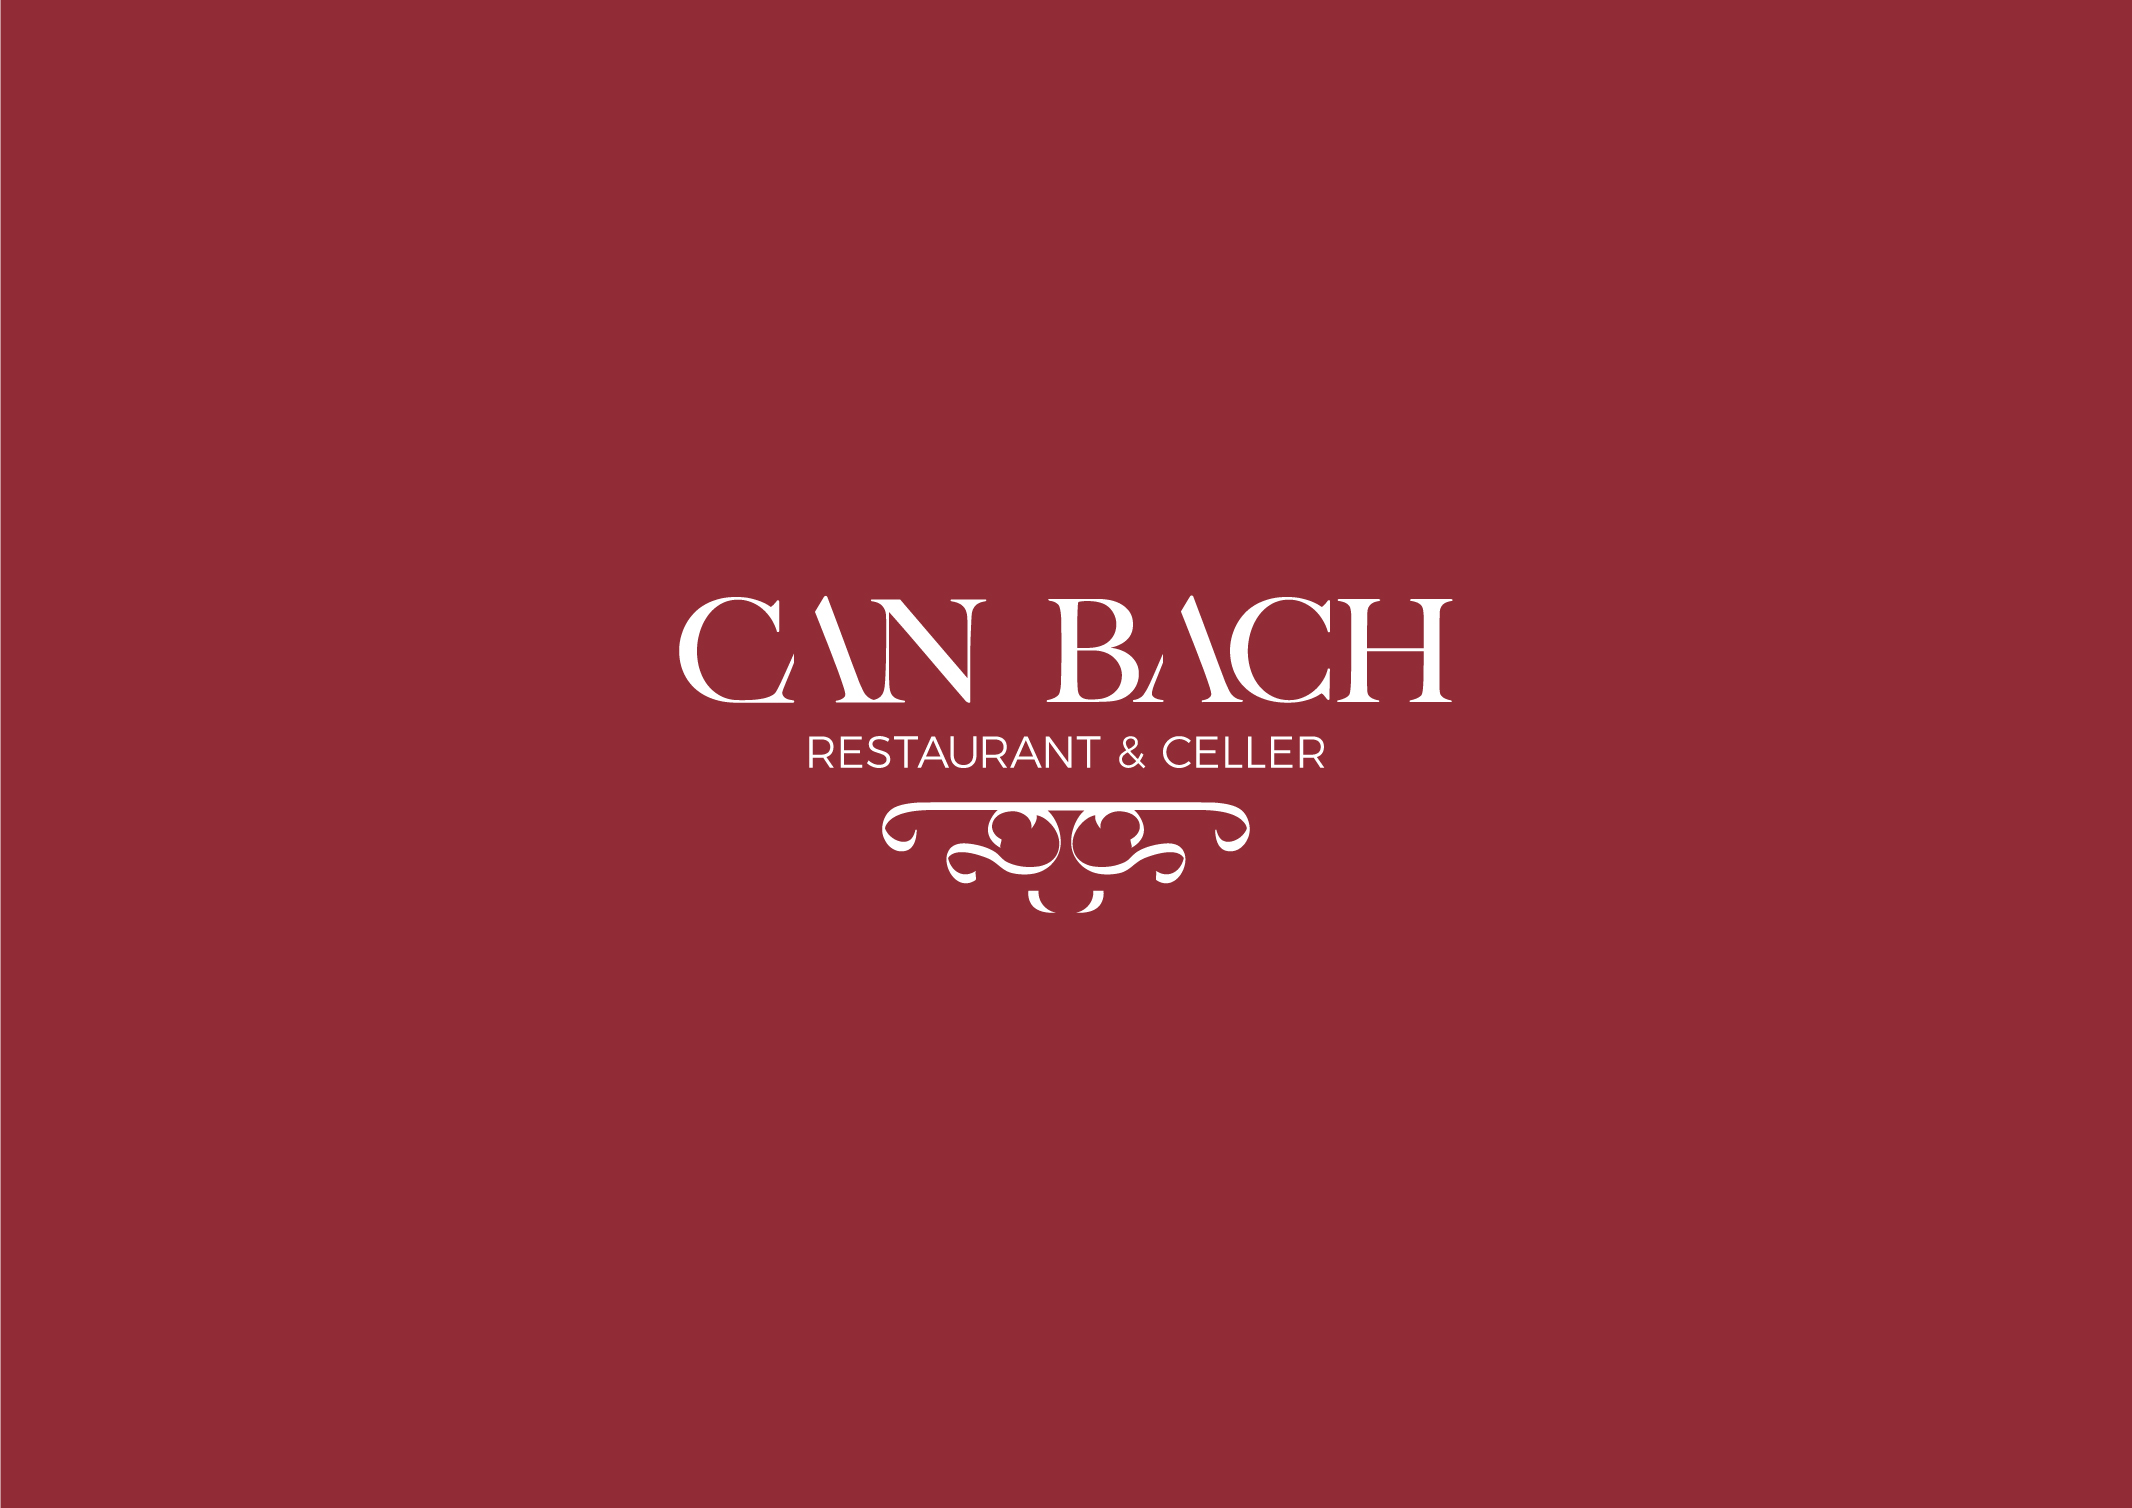 Can Bach